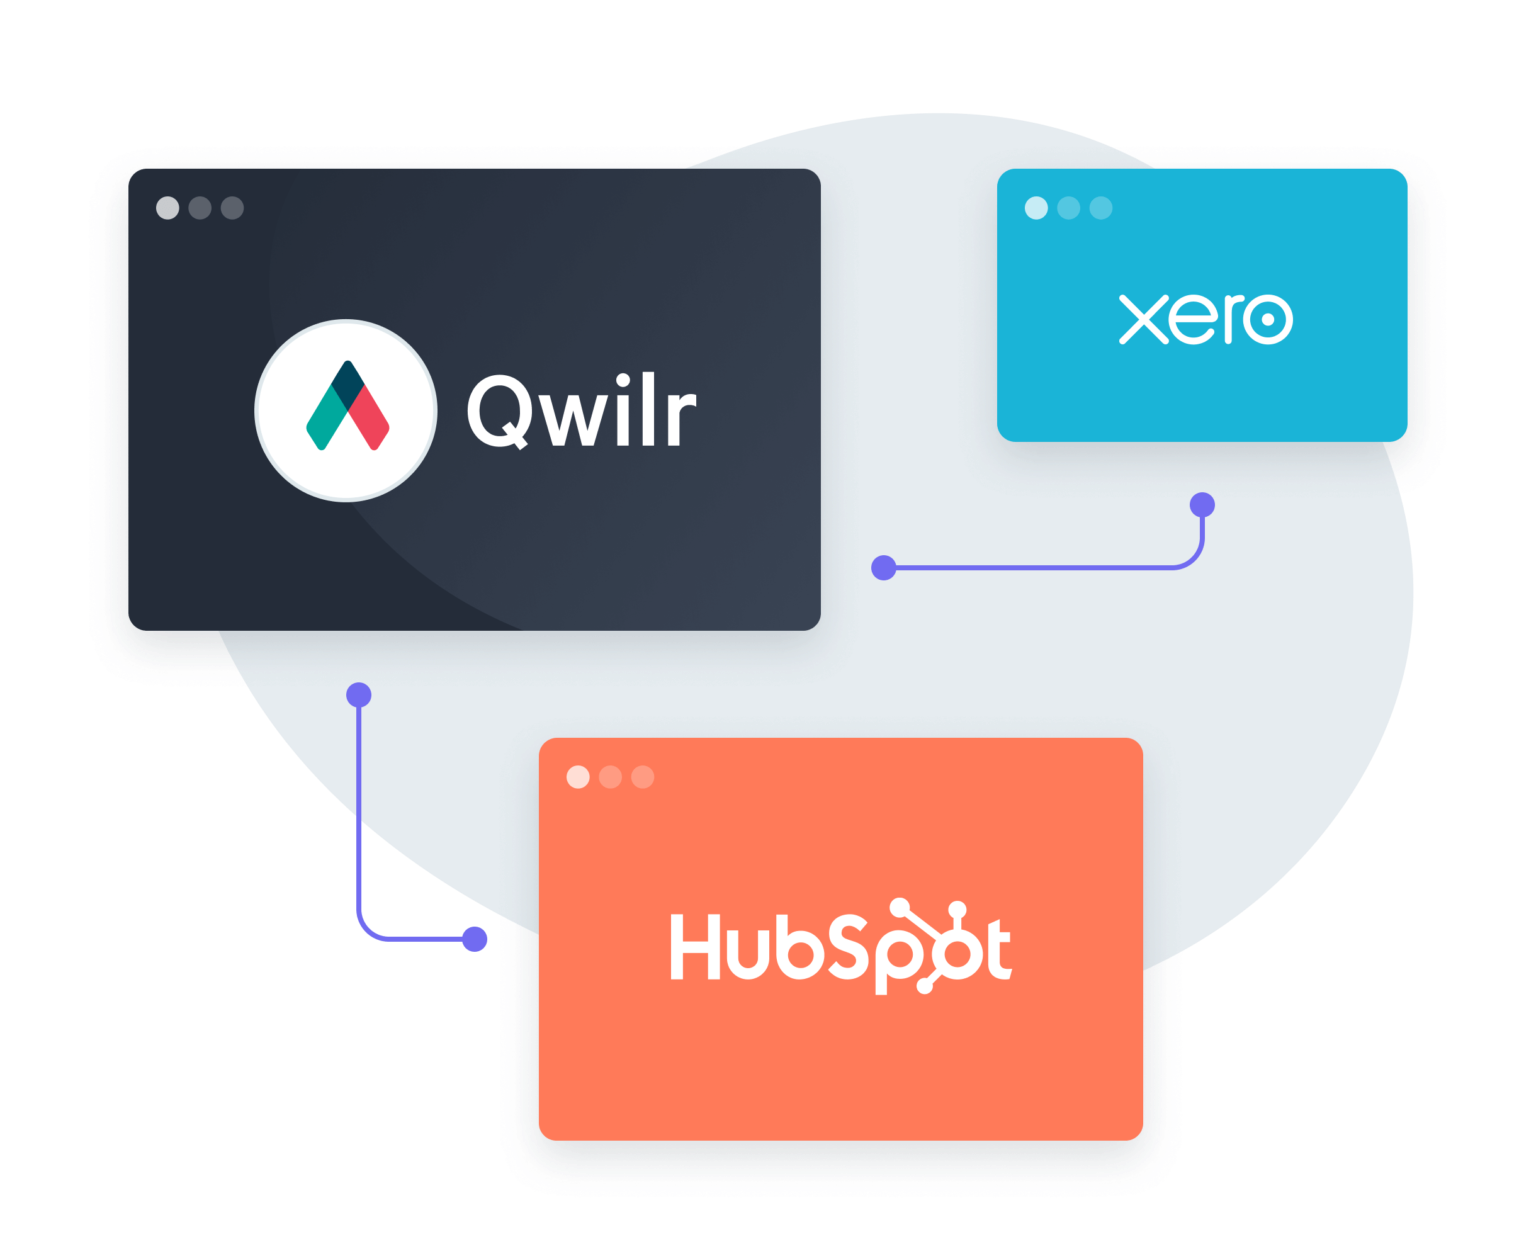 Integrate with your favorite tools, like HubSpot, Salesforce, Xero and more.